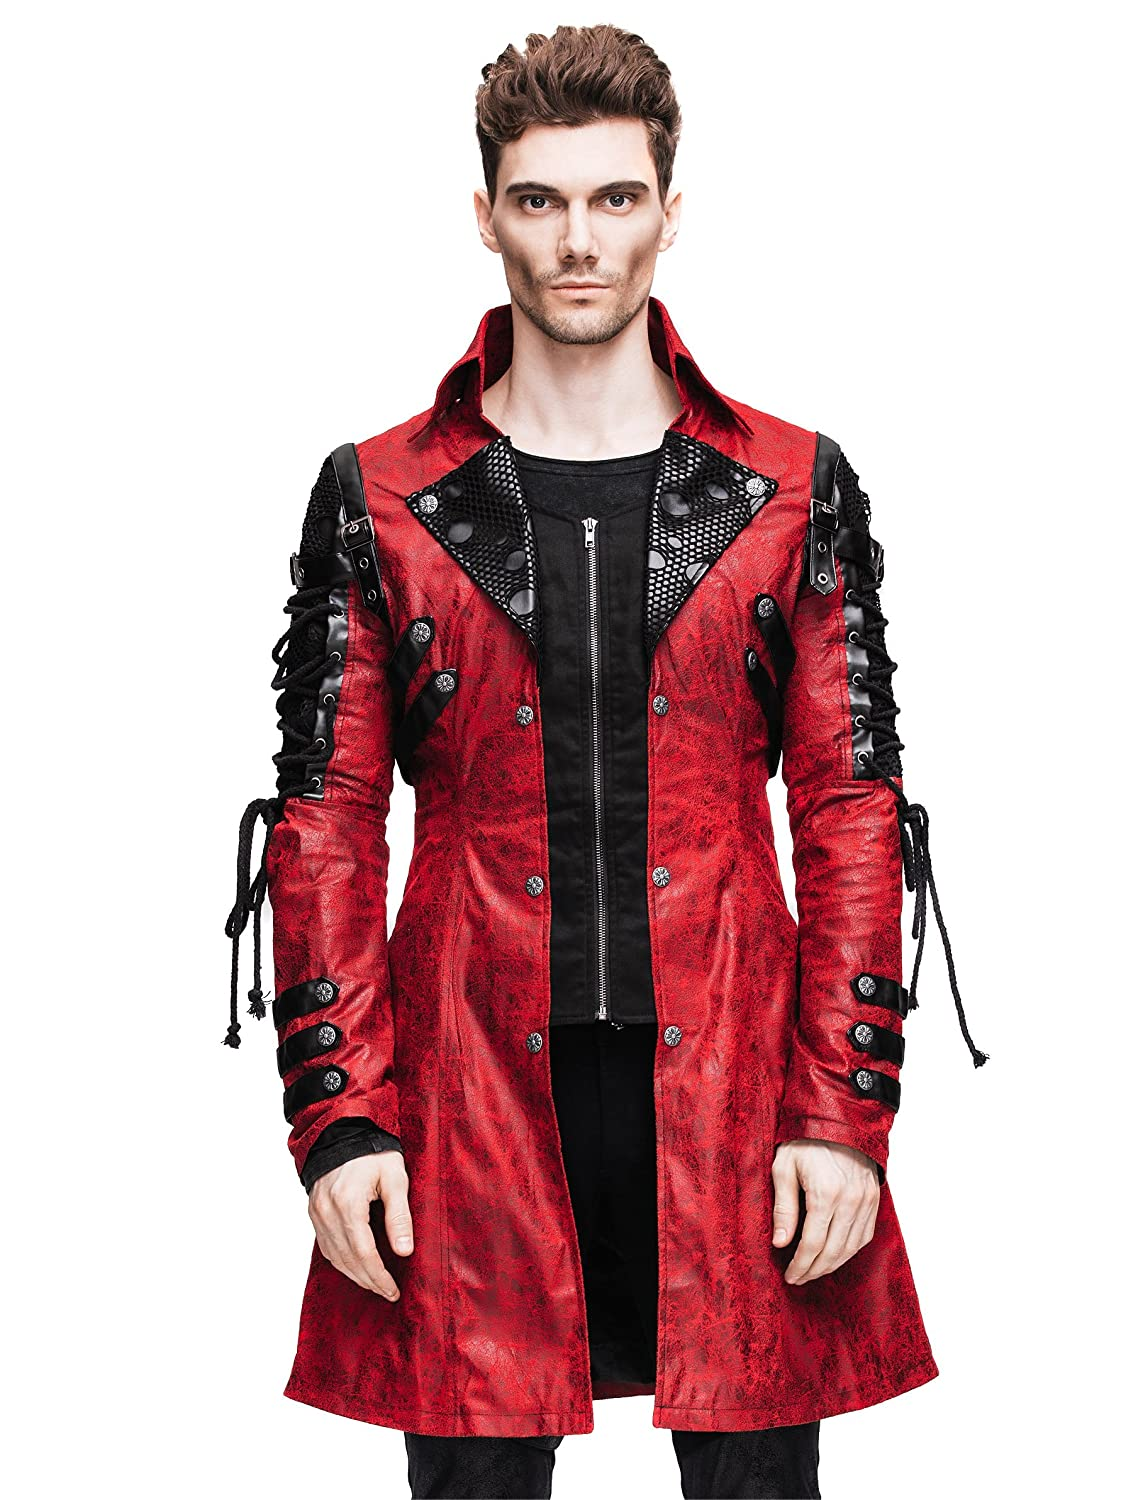 Men's Steampunk Jackets, Coats & Suits Steampunk Coat Gothic Clothing Cyberpunk Punk Jacket Coat Renaissance Costume $168.49 AT vintagedancer.com